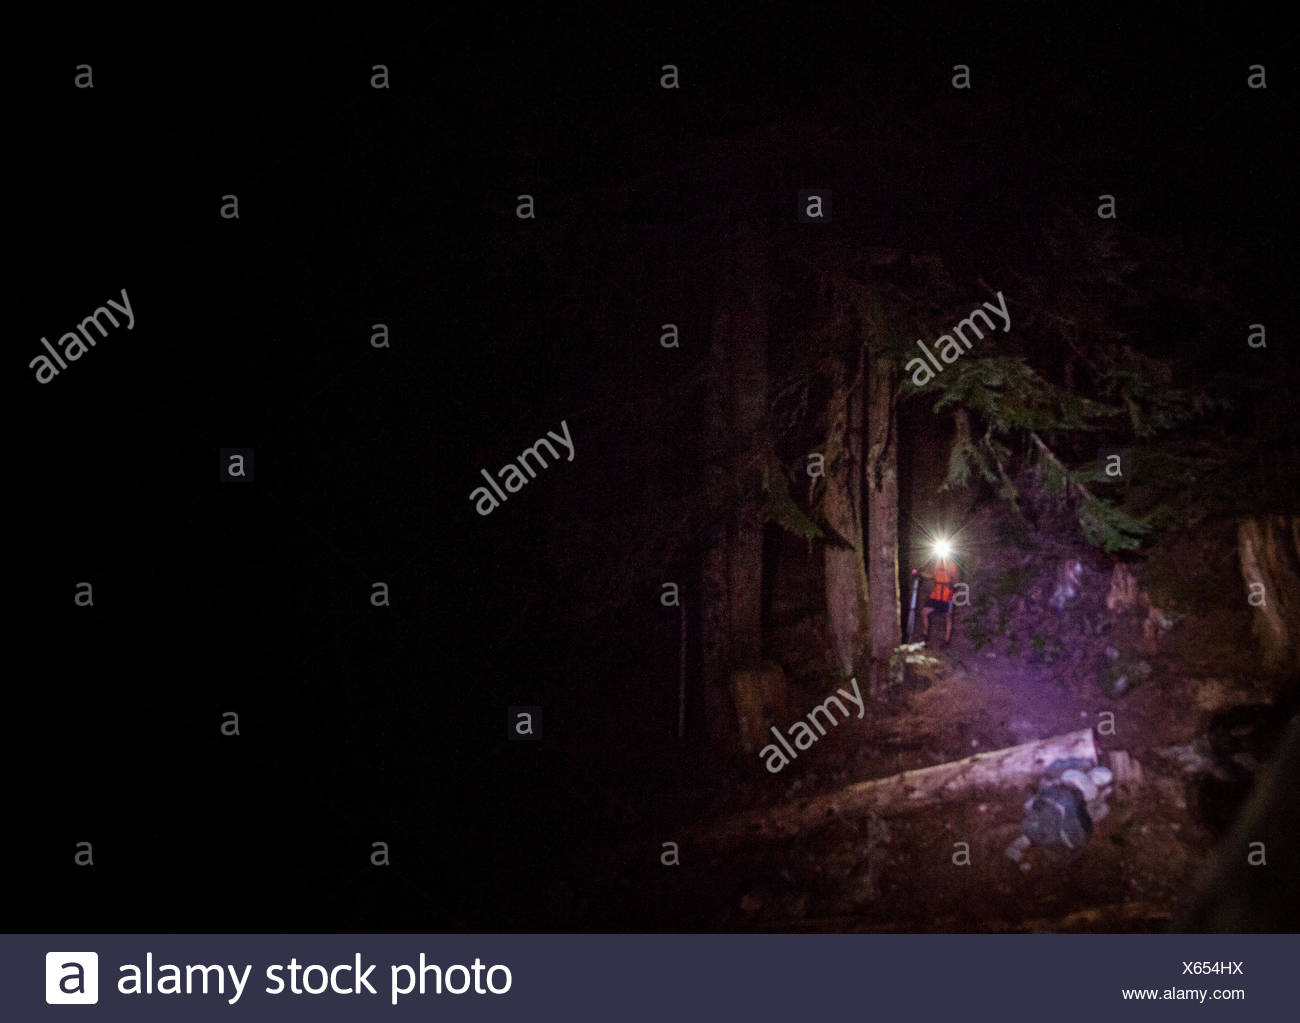 A lone hiker and his headlamp in the forest in a trail in the Glacier Peak Wilderness of Washington. - Stock Image